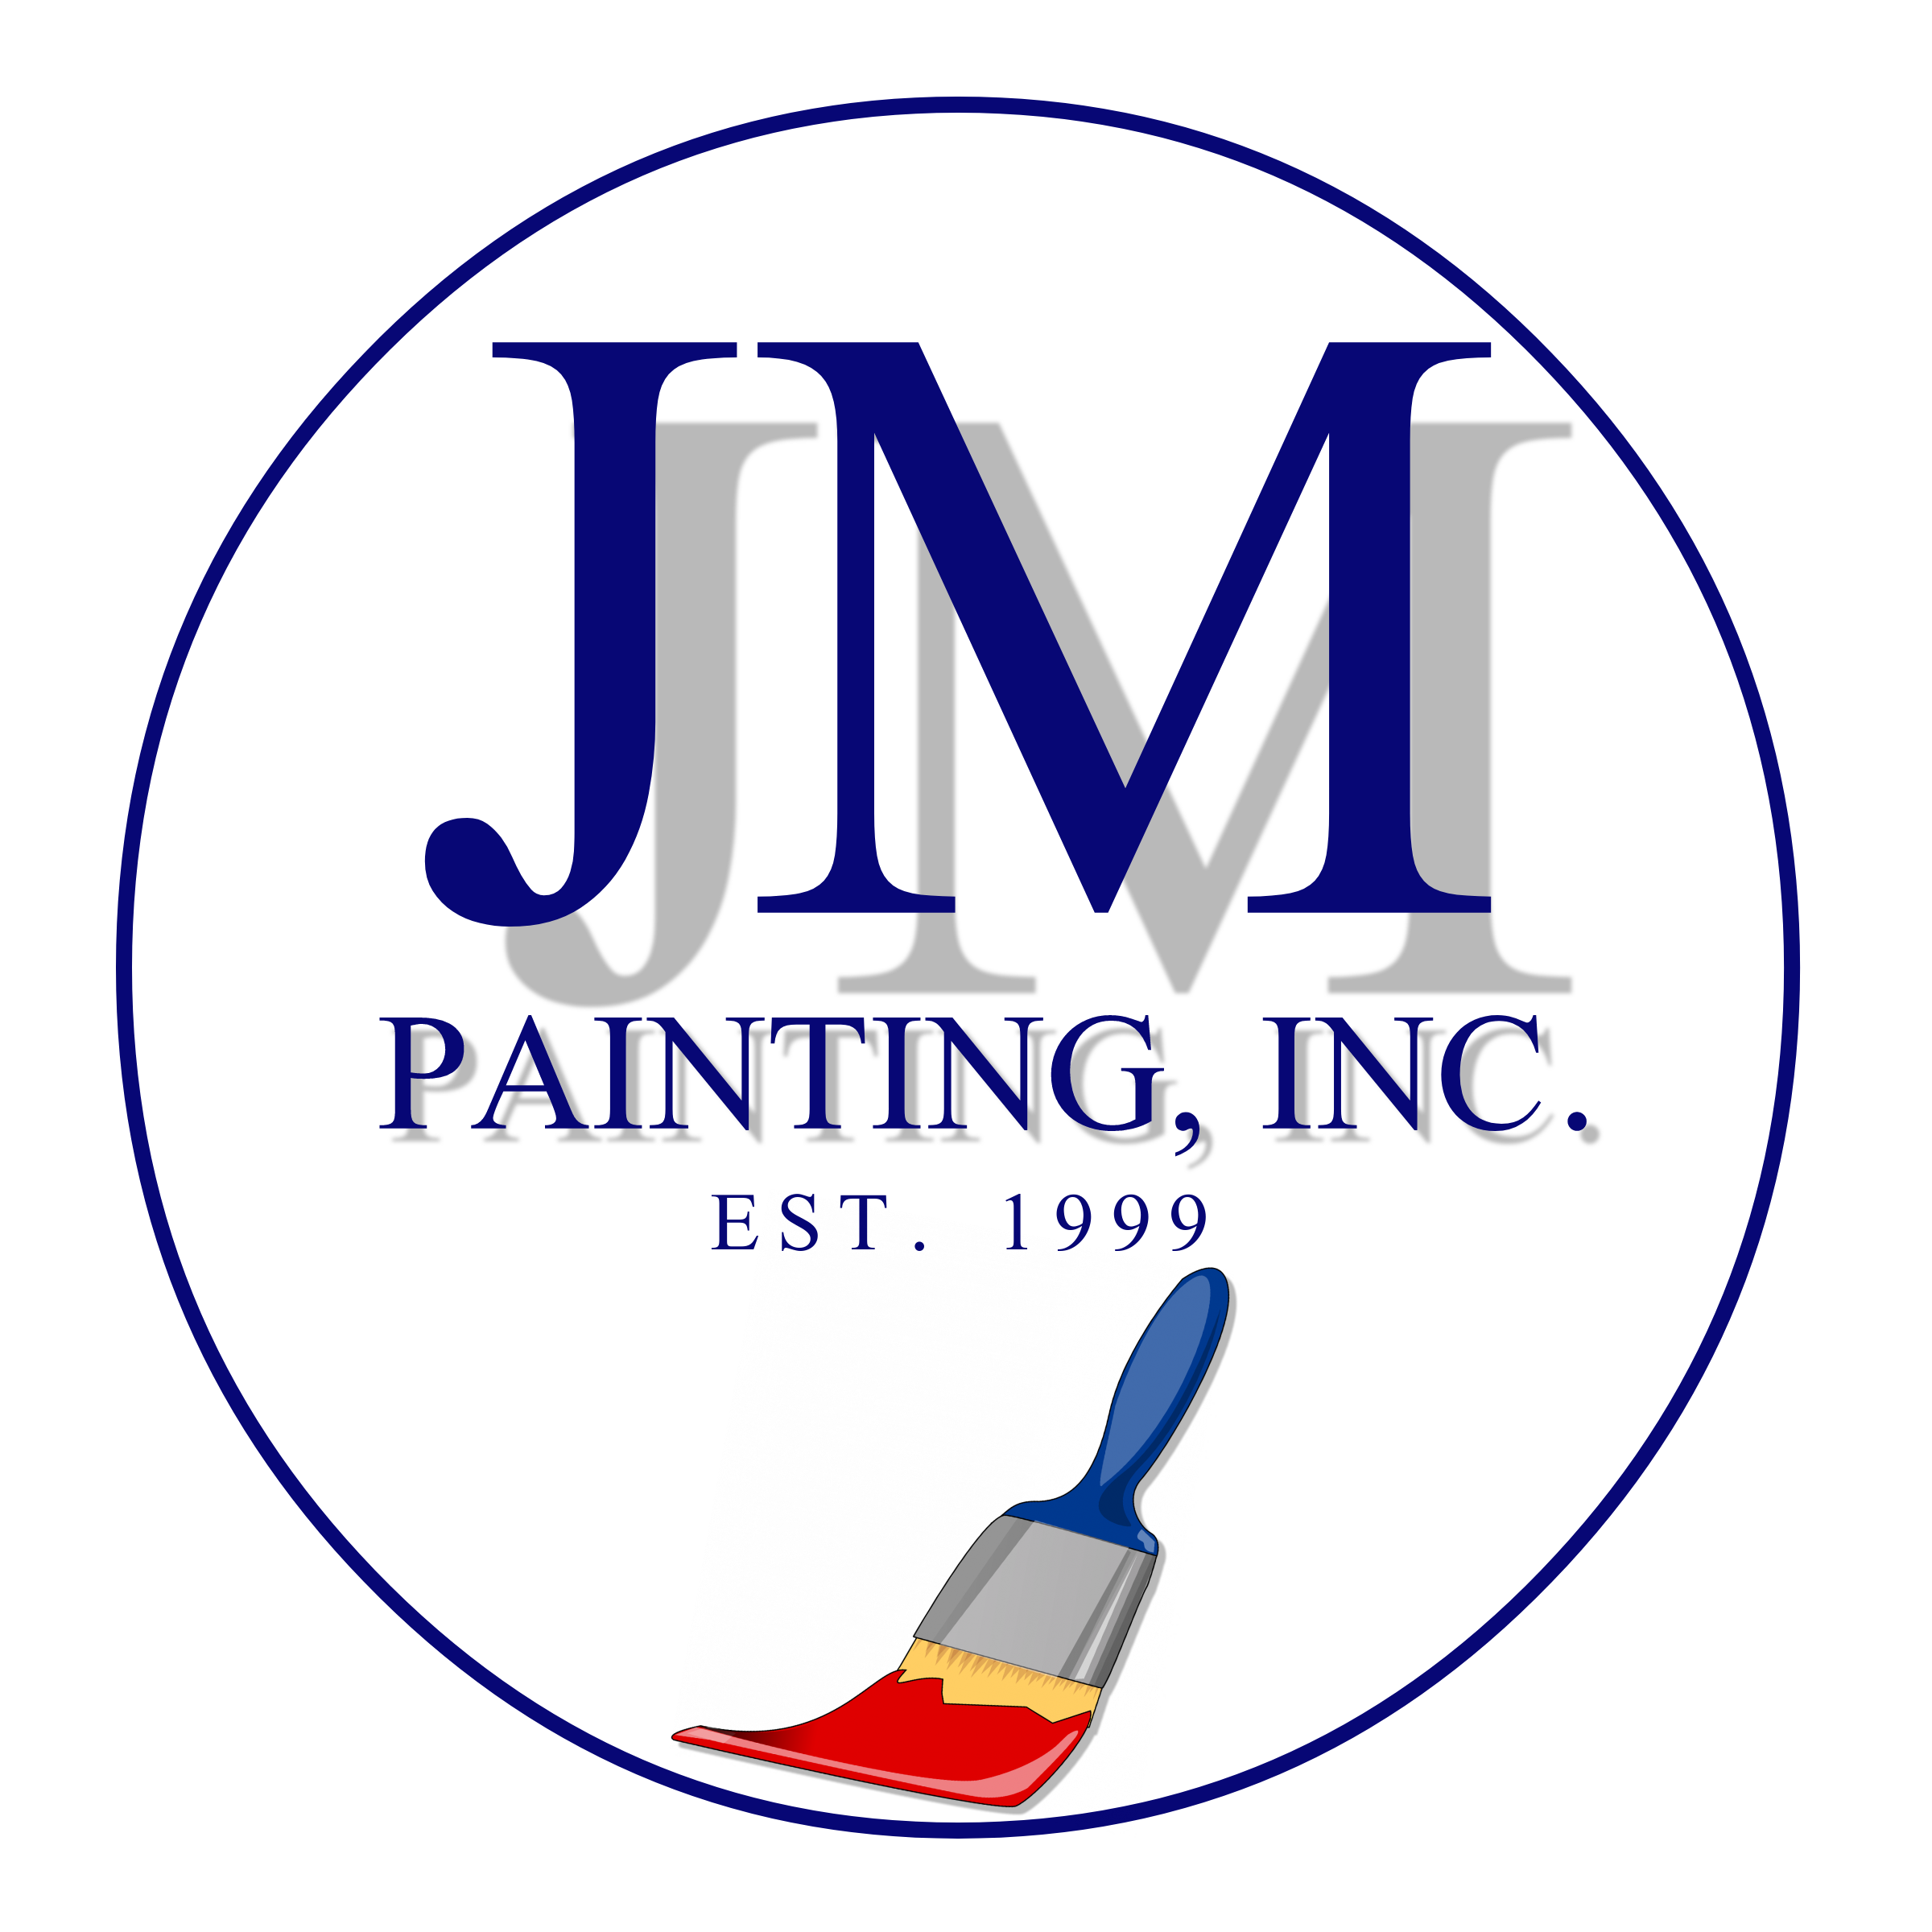 JM Painting, Inc.